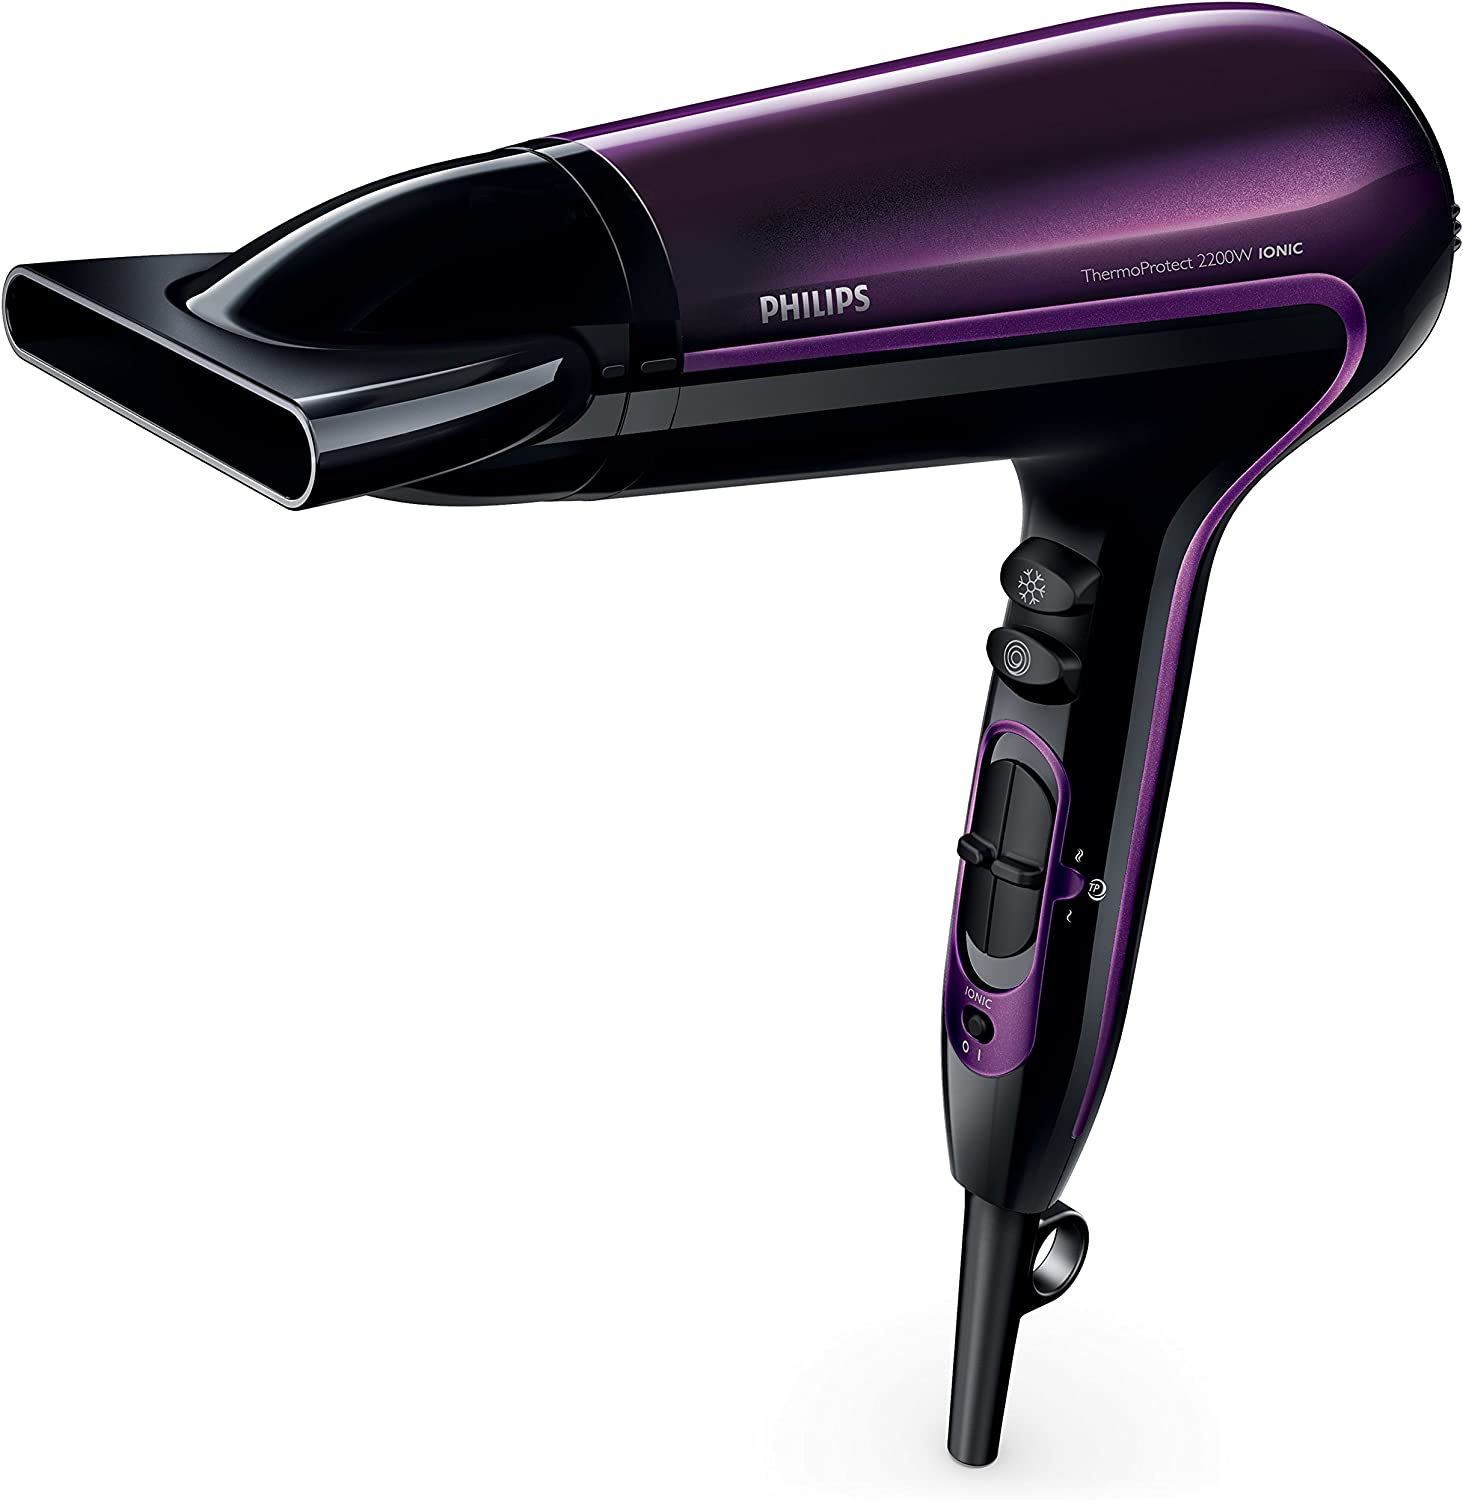 Philips DryCare Advanced Hair Dryer